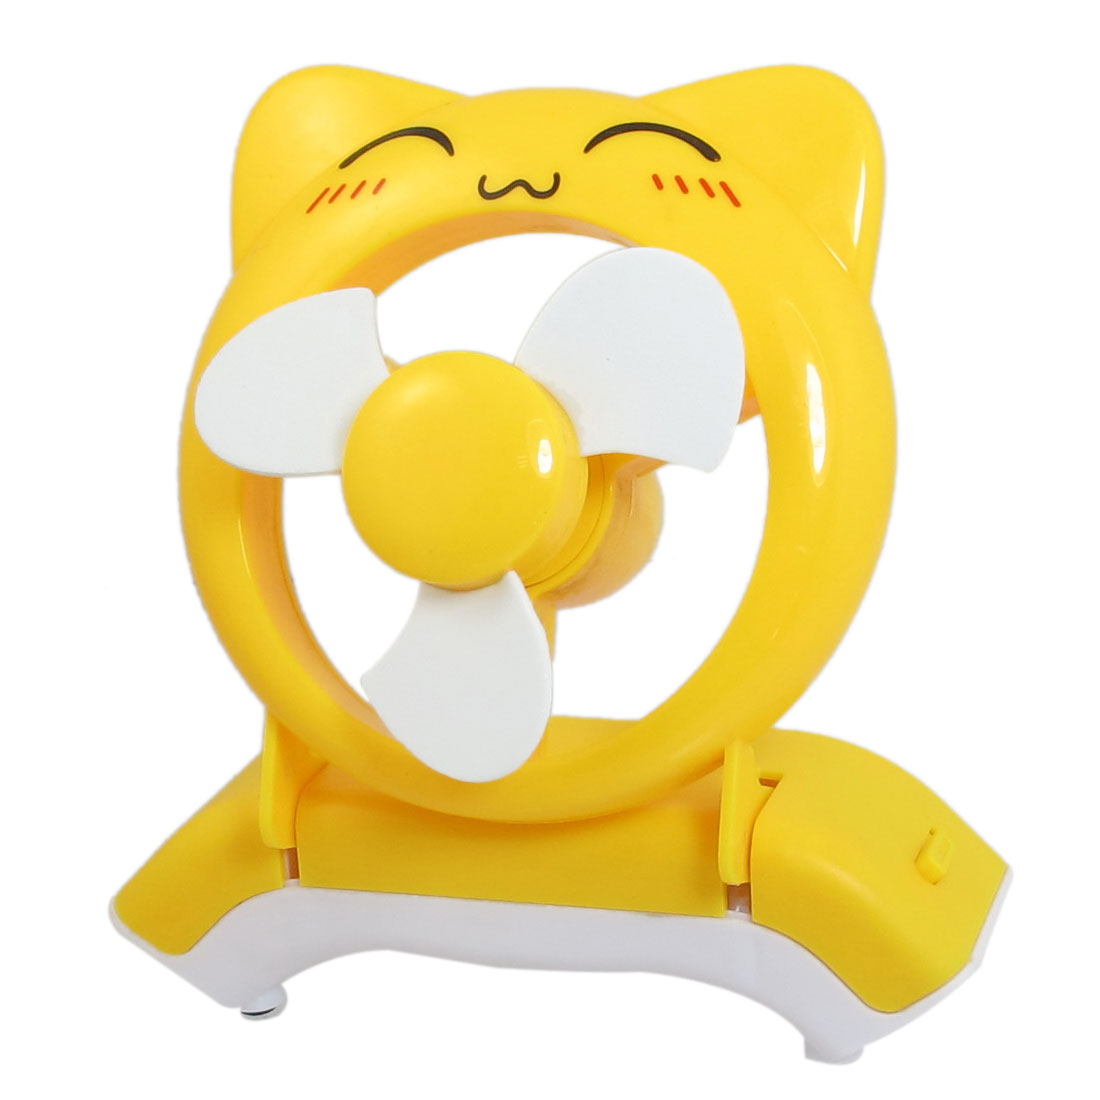 Cartoon Bear Design Portable Battery USB Power PC Laptop Cooler Mini Fan Yellow